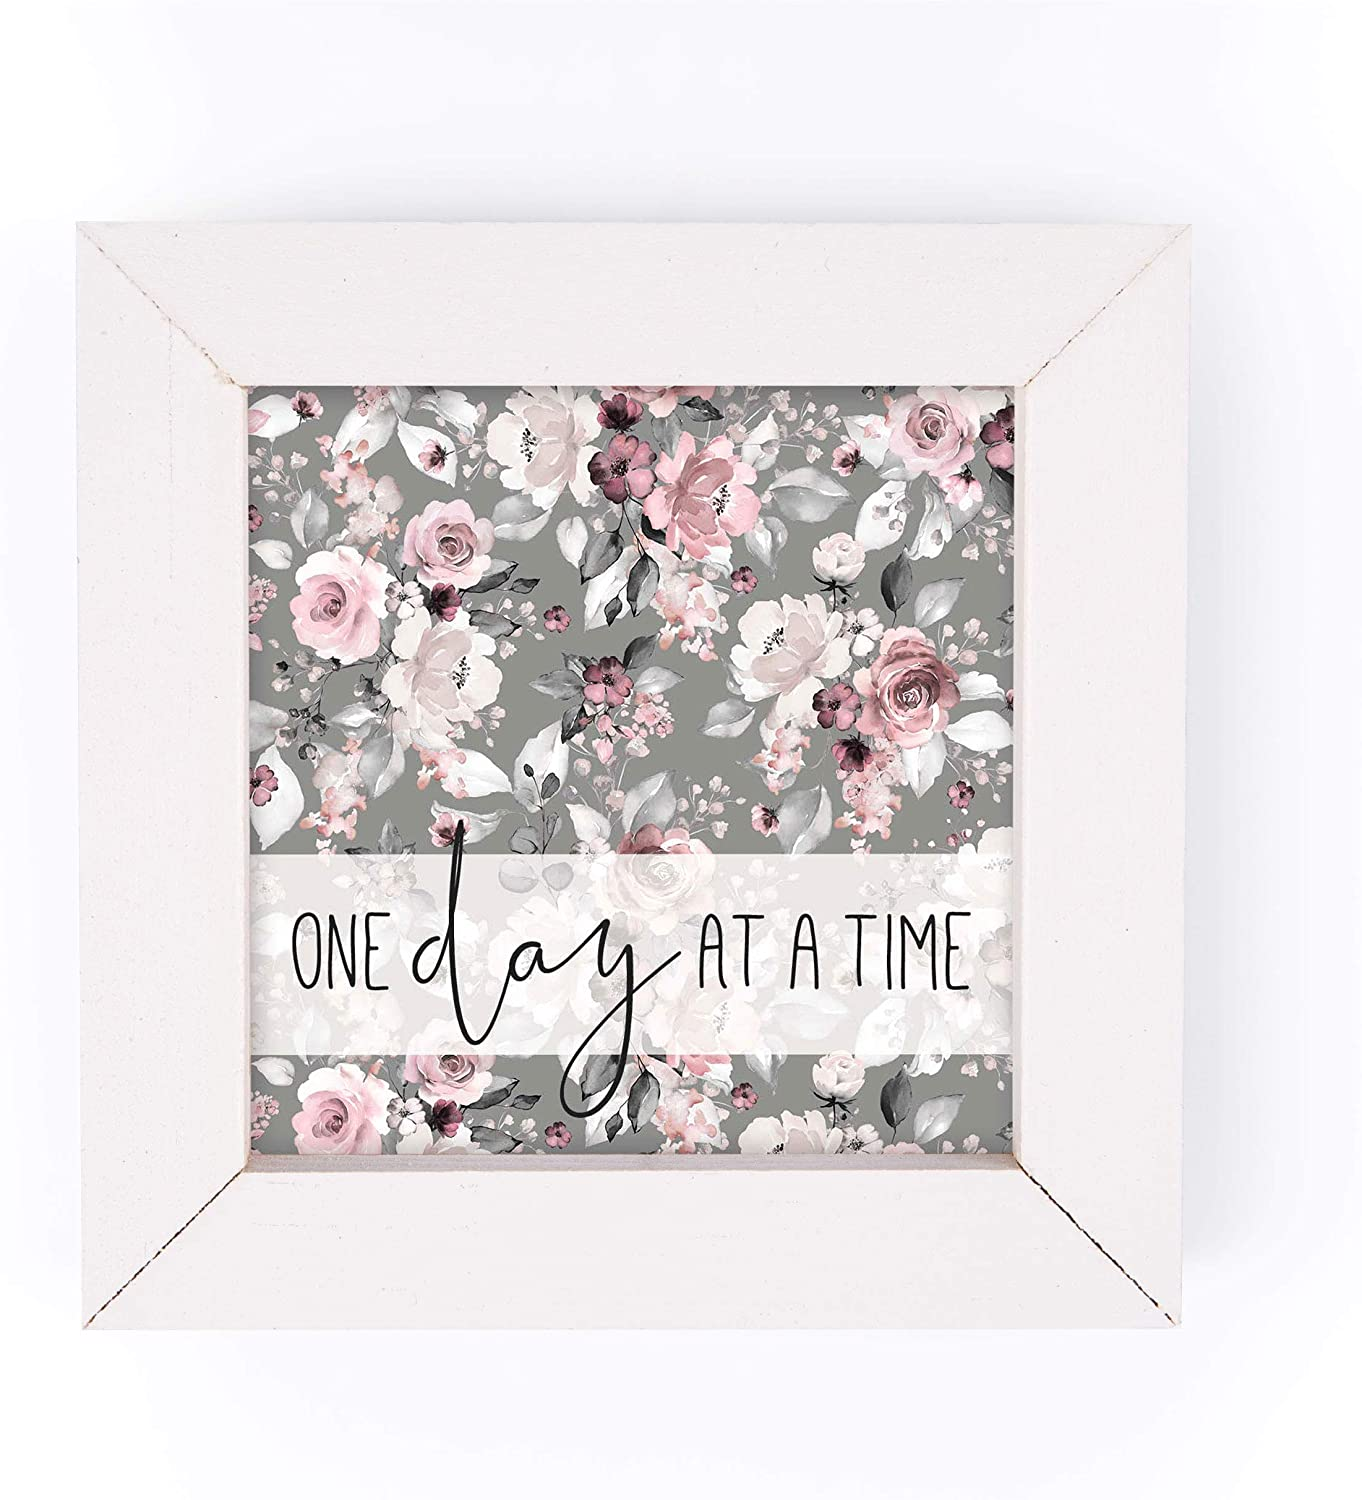 P. Graham Dunn One Day at A Time Grey Floral 5 x 5 Pine Wood Decorative White Framed Art Sign